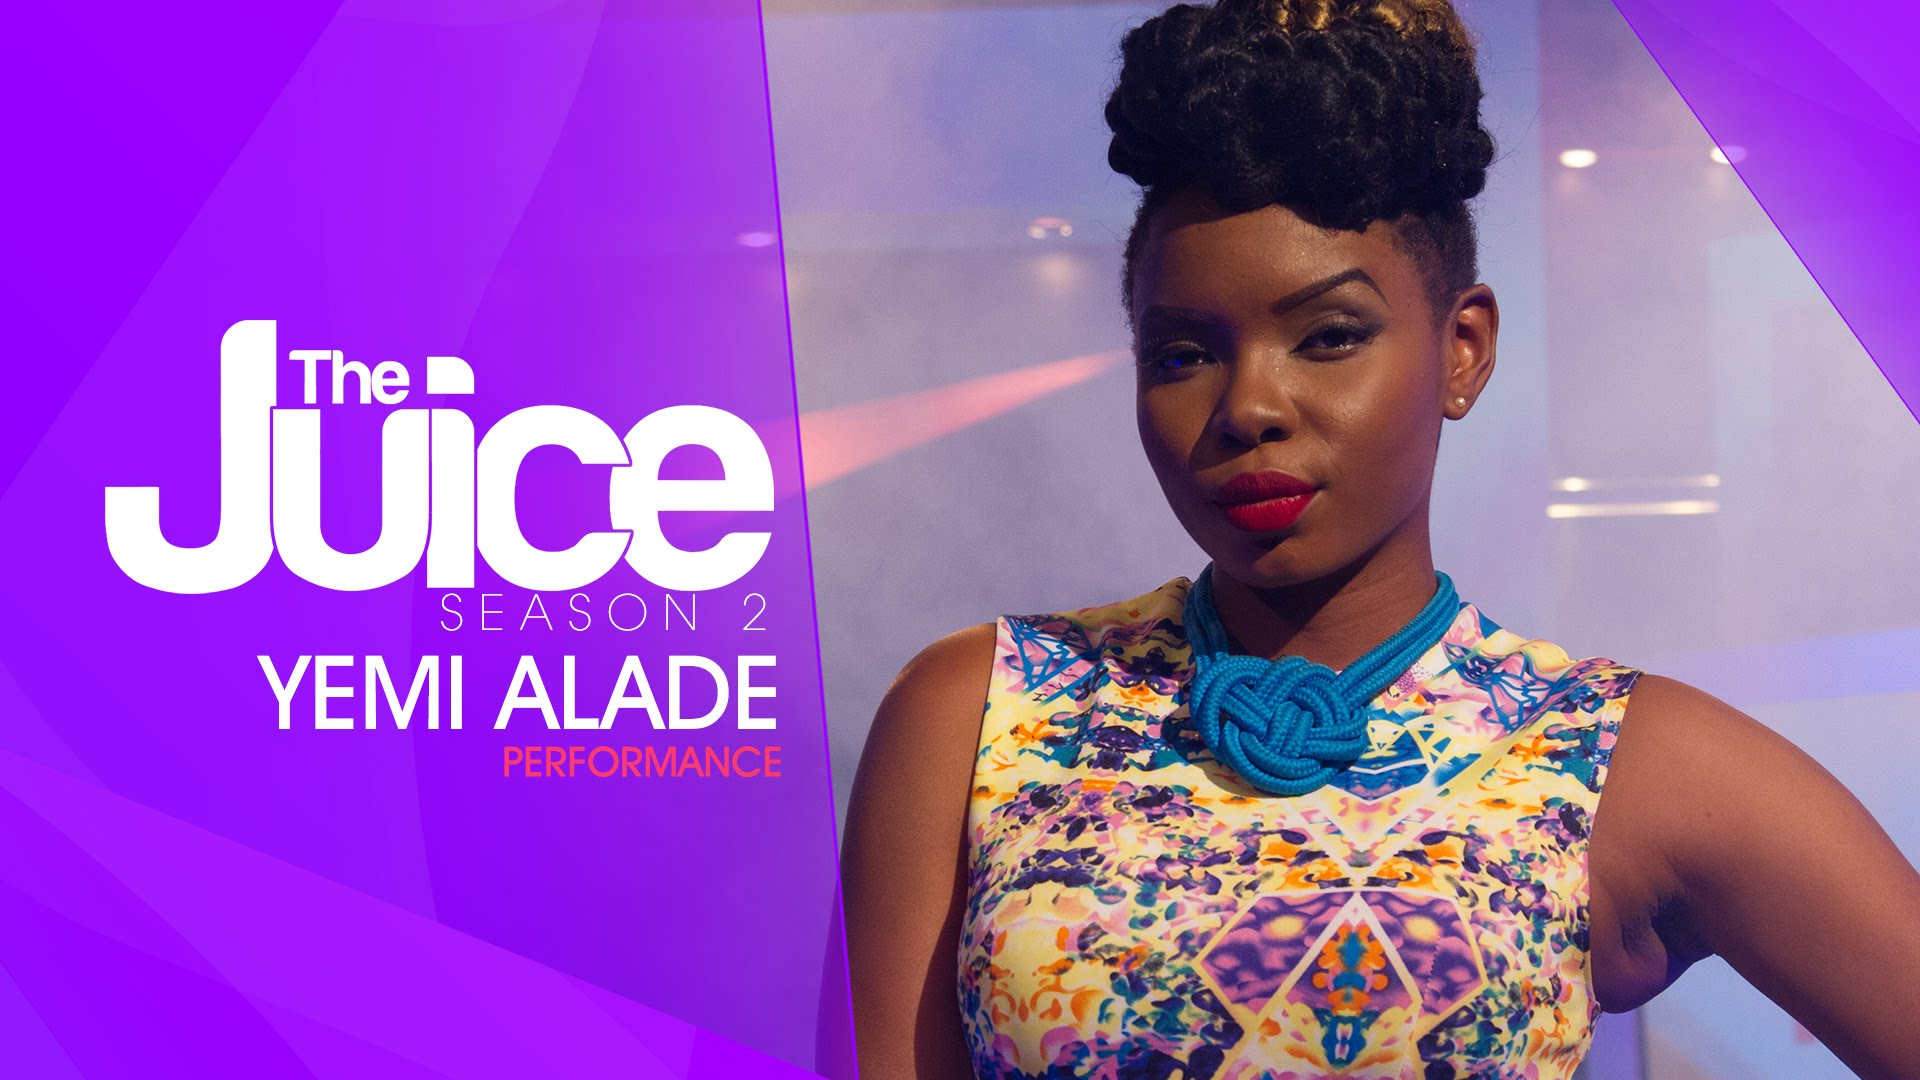 Yemi Alade Performance on The Juice Grand Finale